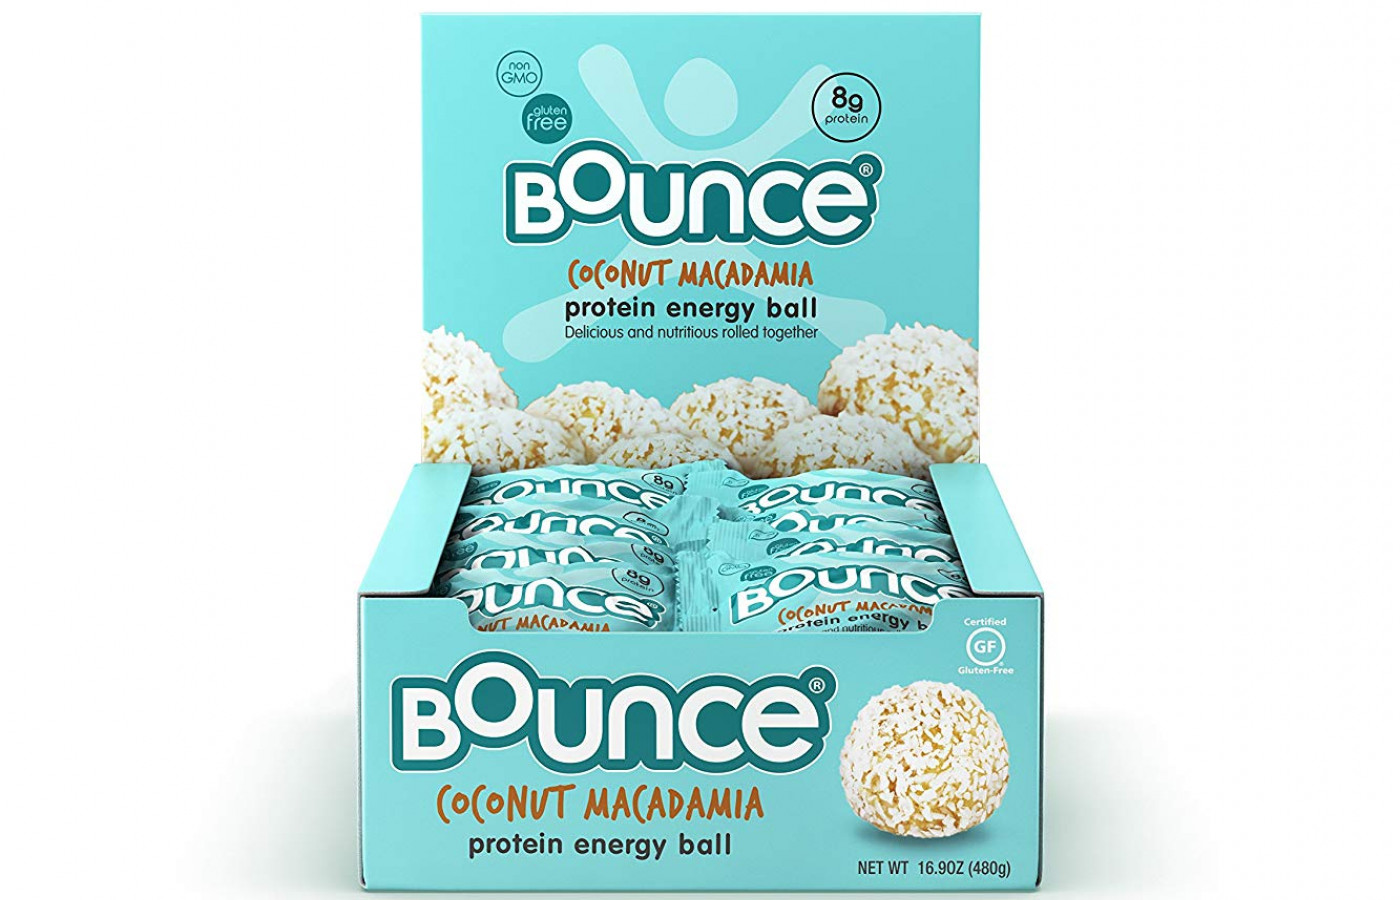 bounce coconut macadamia box